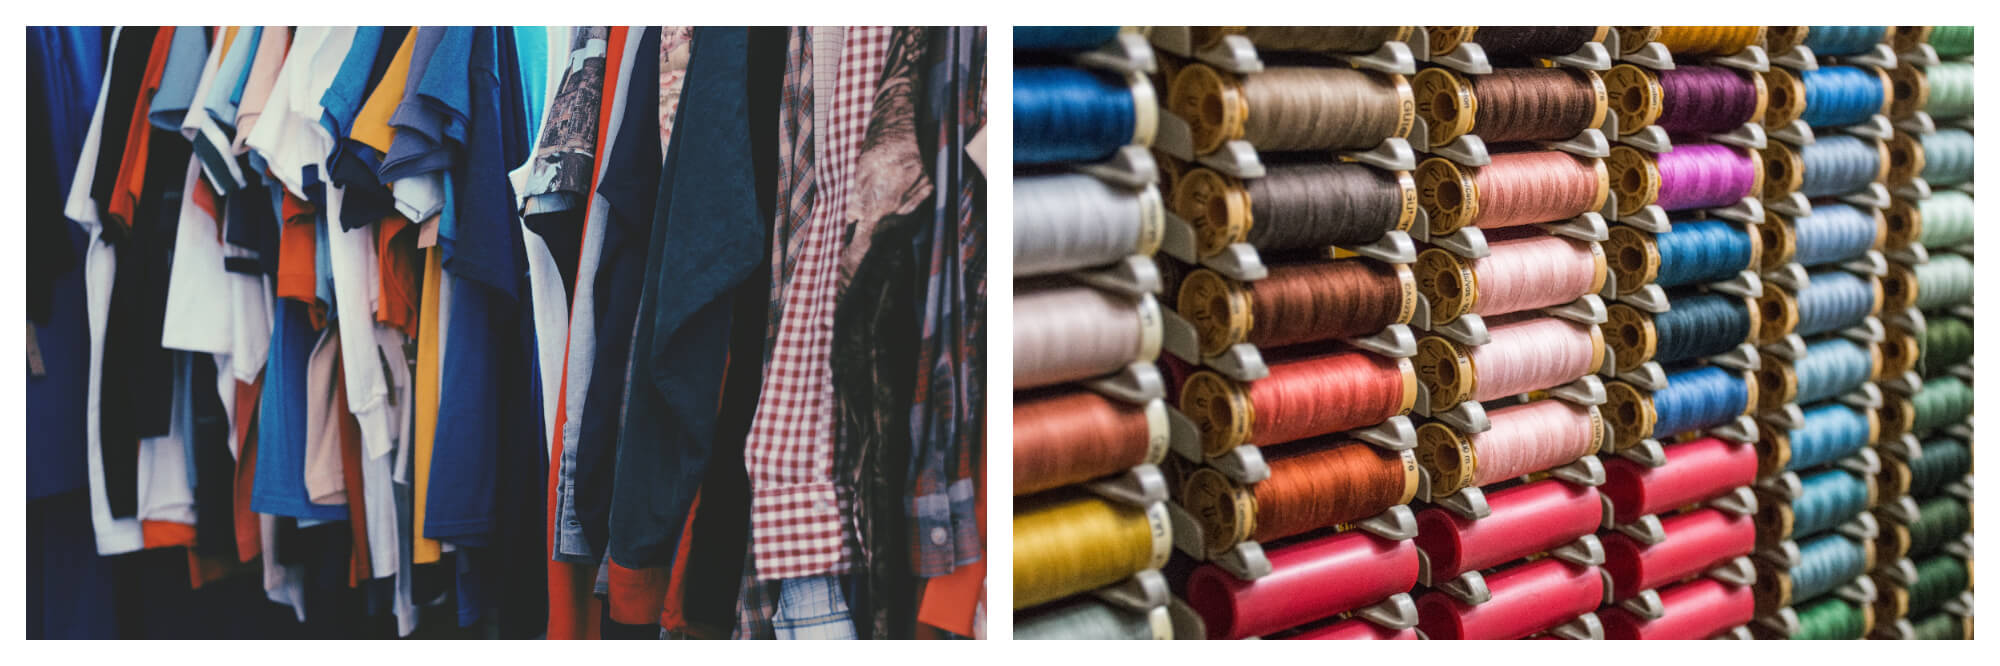 Left: a rack full of assorted men's tshirts.  Right: spools of thread in a shop with an assortment of colors.